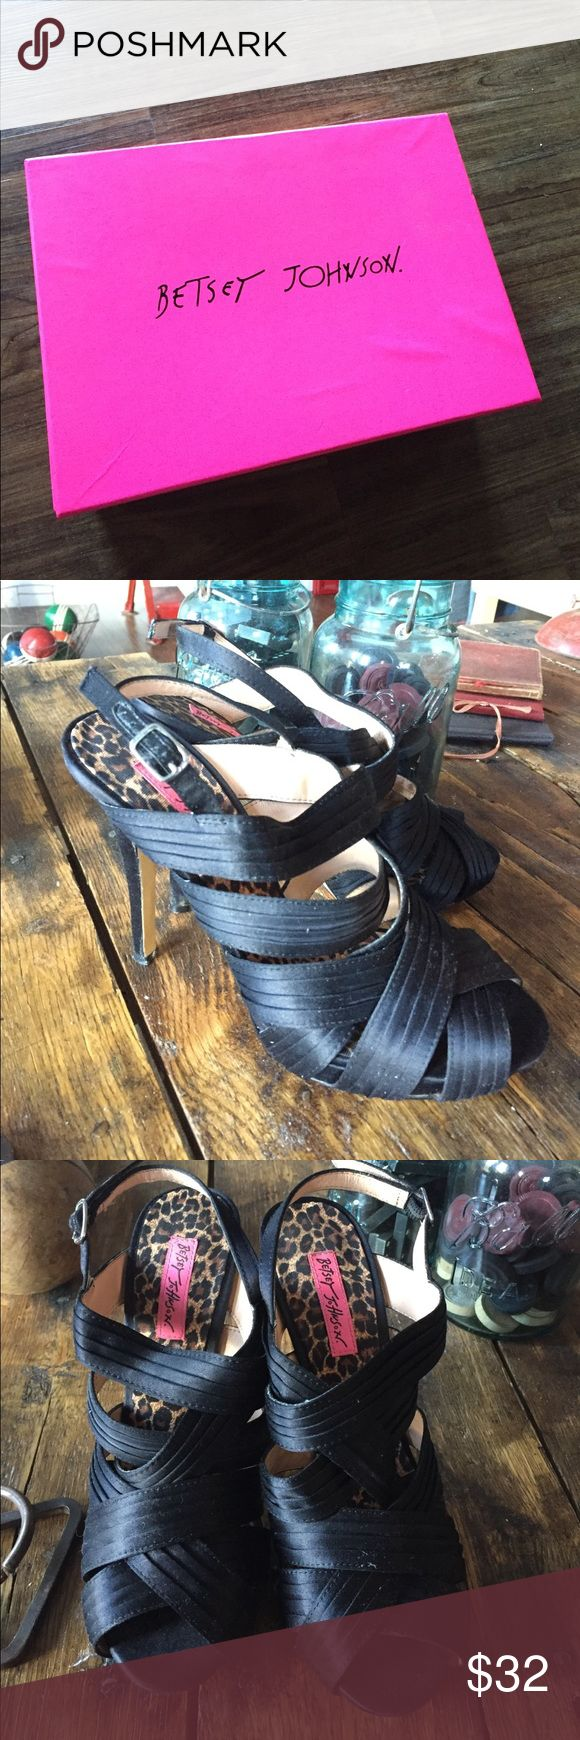 """Betsey Johnson """"Eden"""" black satin sling sexy These are satin, black and sexy. High heeled platform will make you stand tall, about 4 inches taller. Worn a few times. Boy, if these could talk. (1/2 sale this weekend) Betsey Johnson Shoes Heels"""